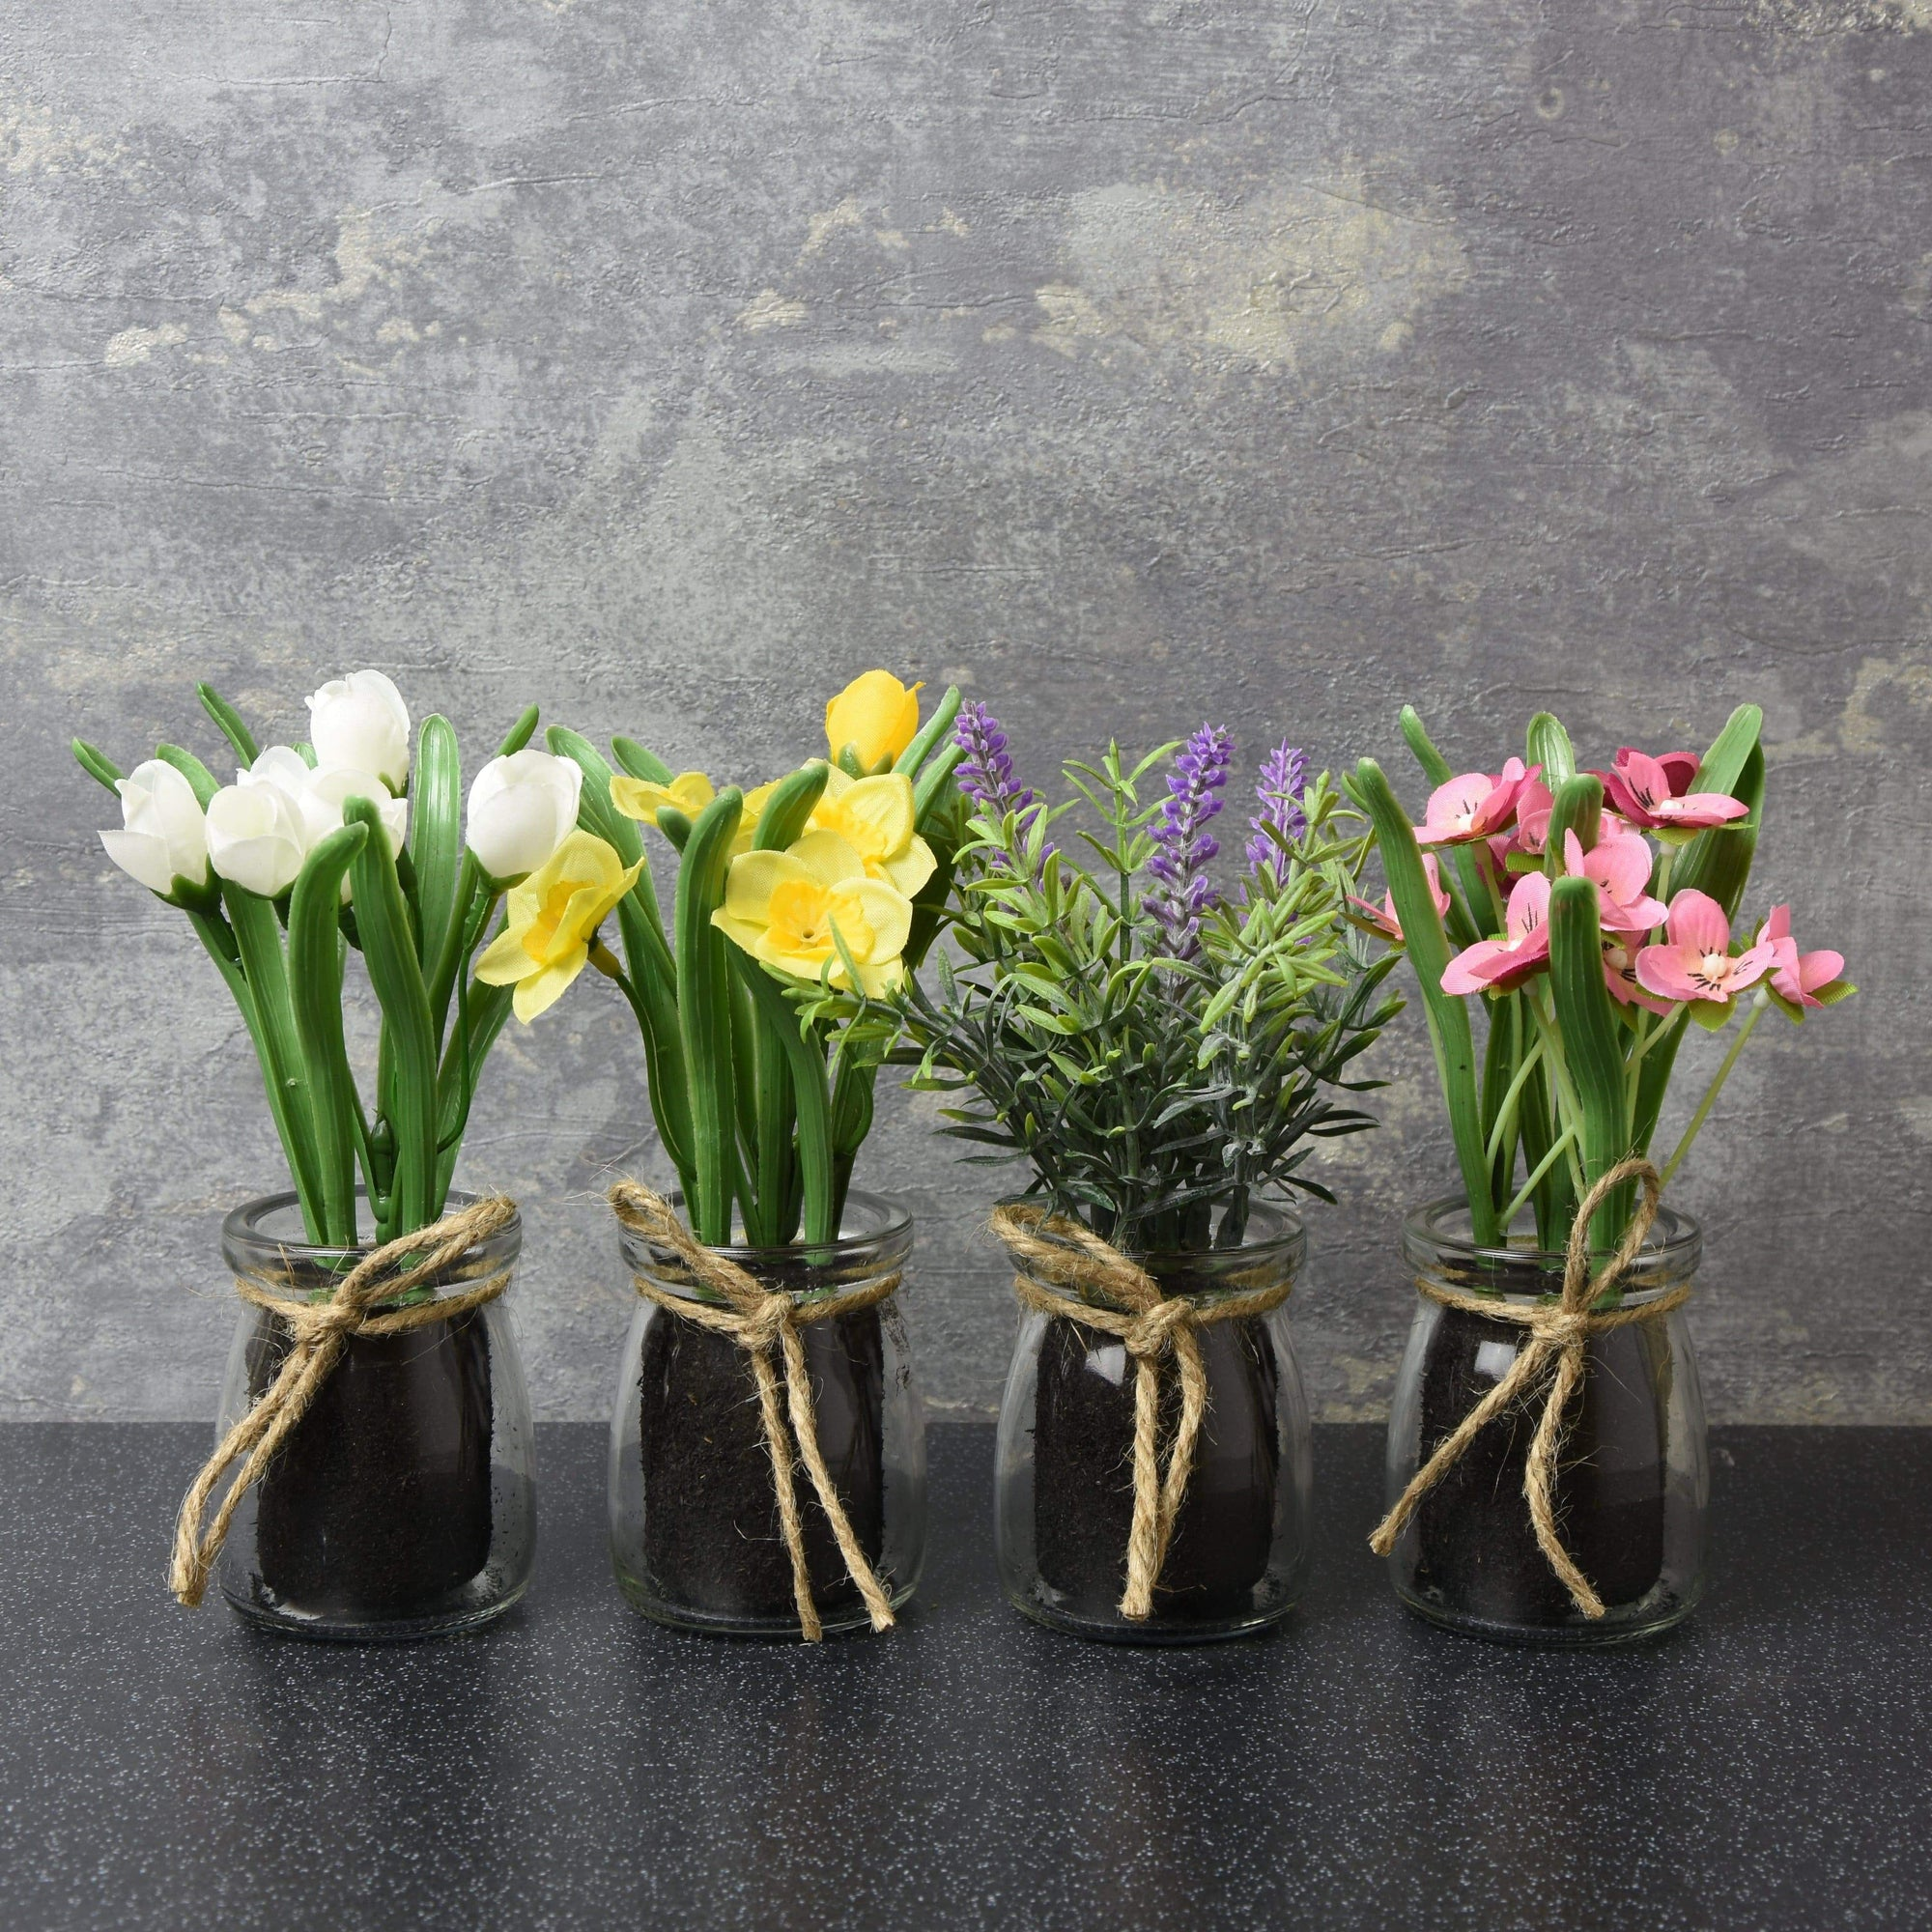 Candlelight & Assorted Artificial Flowers in Glass Pots Various 16cm 12PK